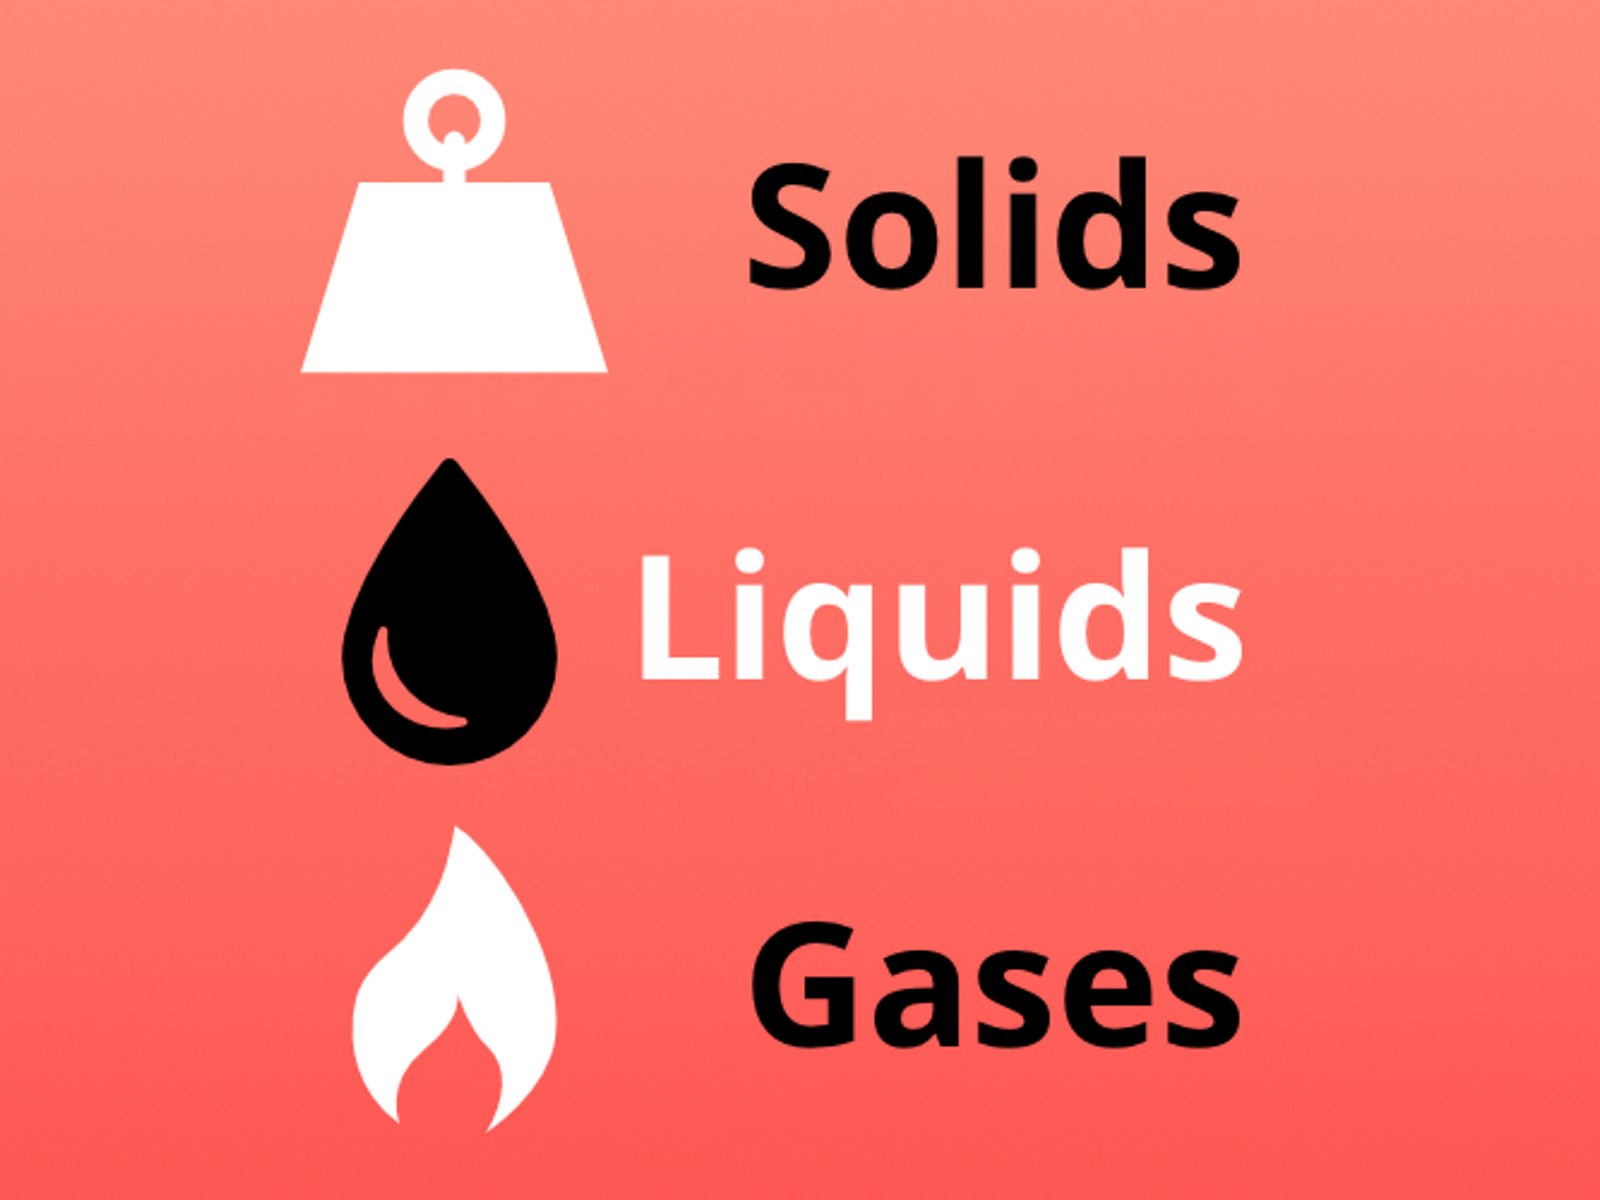 Solids, Liquids and Gases Quiz